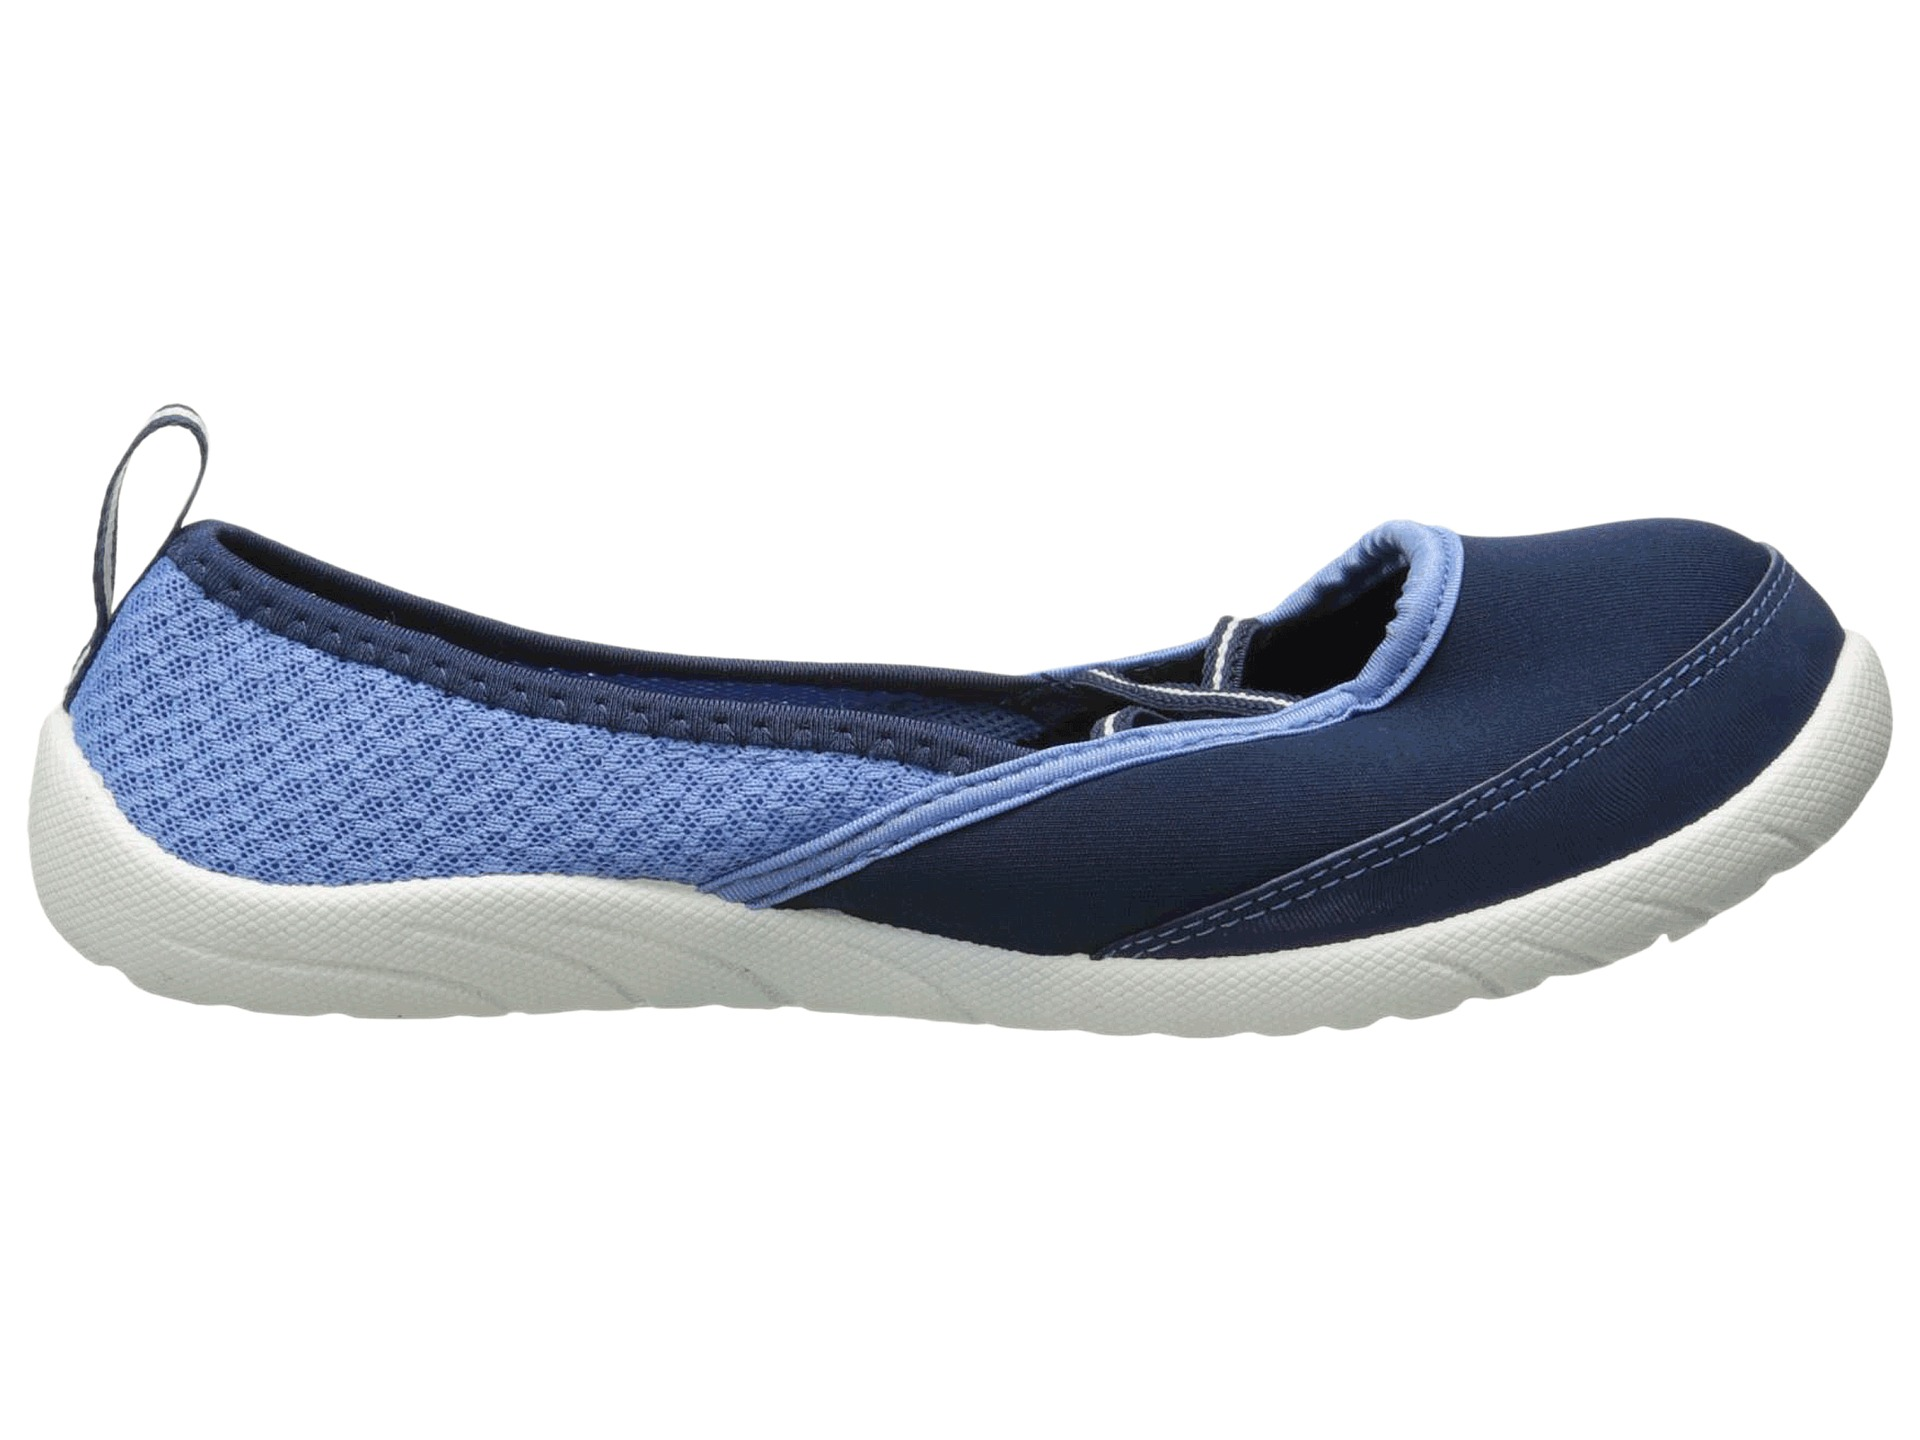 Speedo Women S Beachrunner   Water Shoes Size